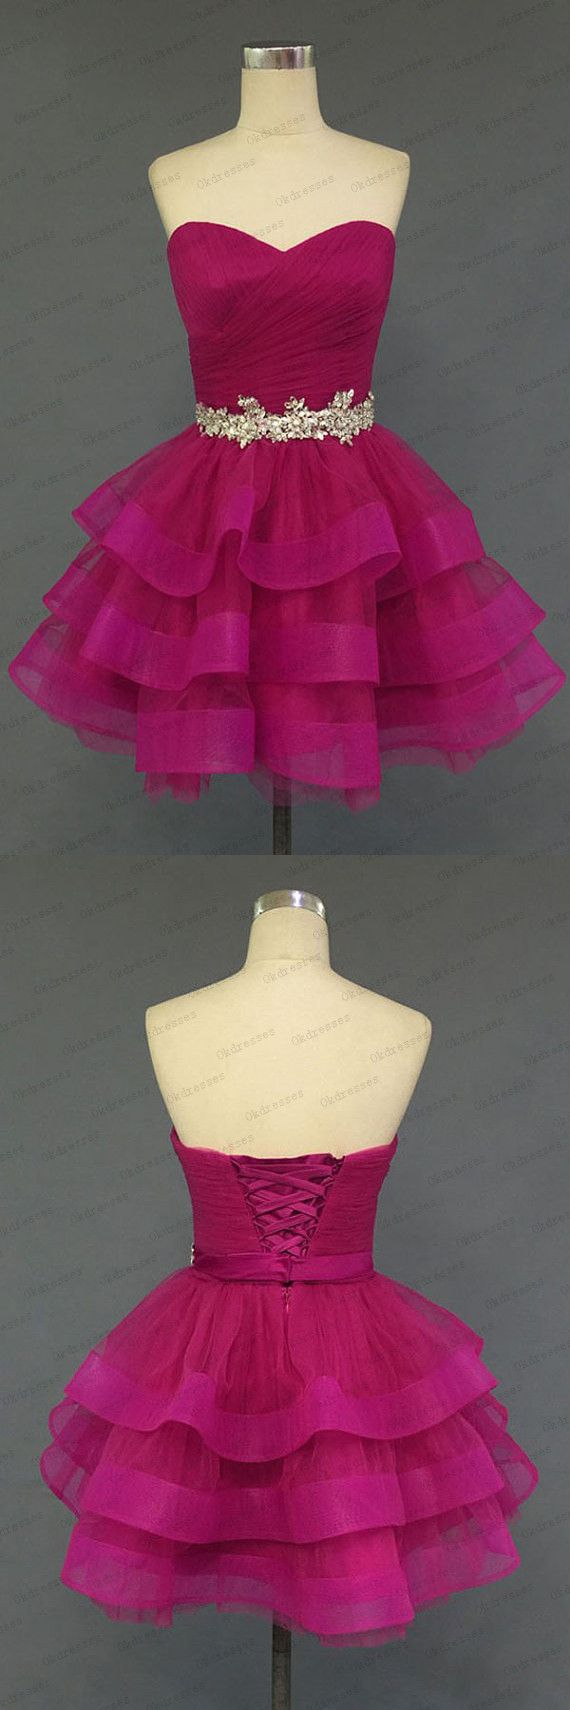 Hot Pink Organza Sweetheart Neckline Short Prom Dress Homecoming Dresses,Beadings Belt Tiered Wedding Party Gown, Rose Red Layers Homecoming Dress